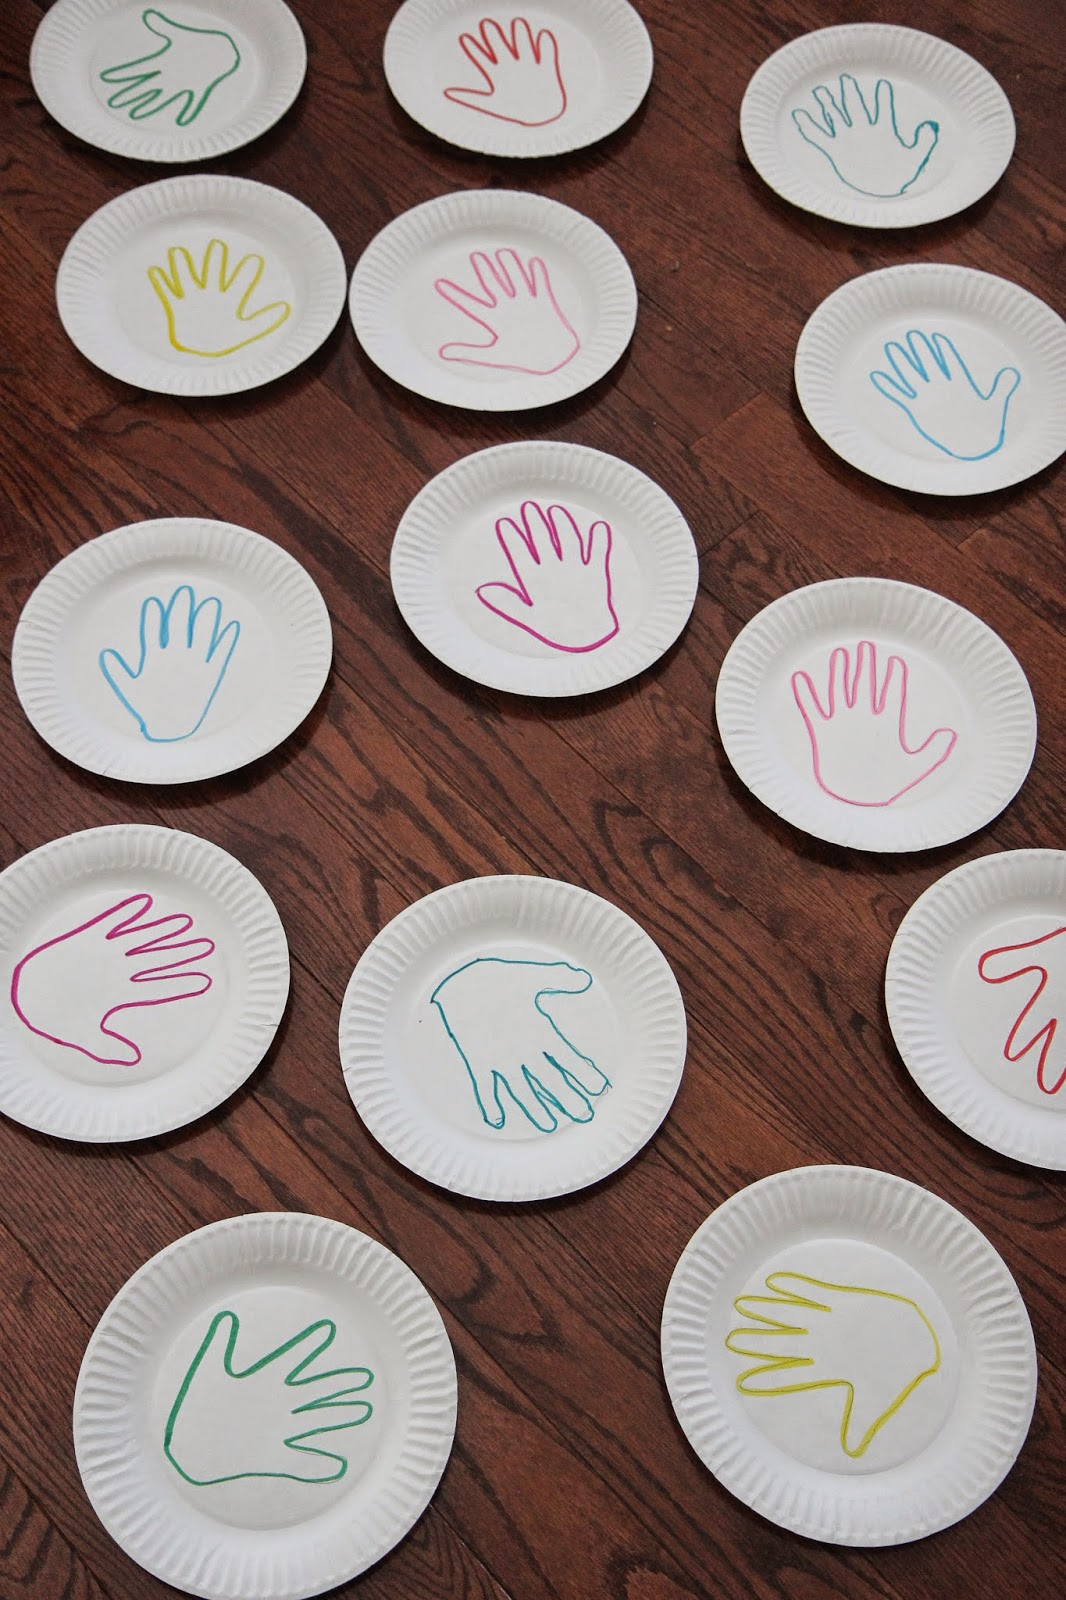 Toddler Approved!: Handprint Color Matching Game {Virtual ...